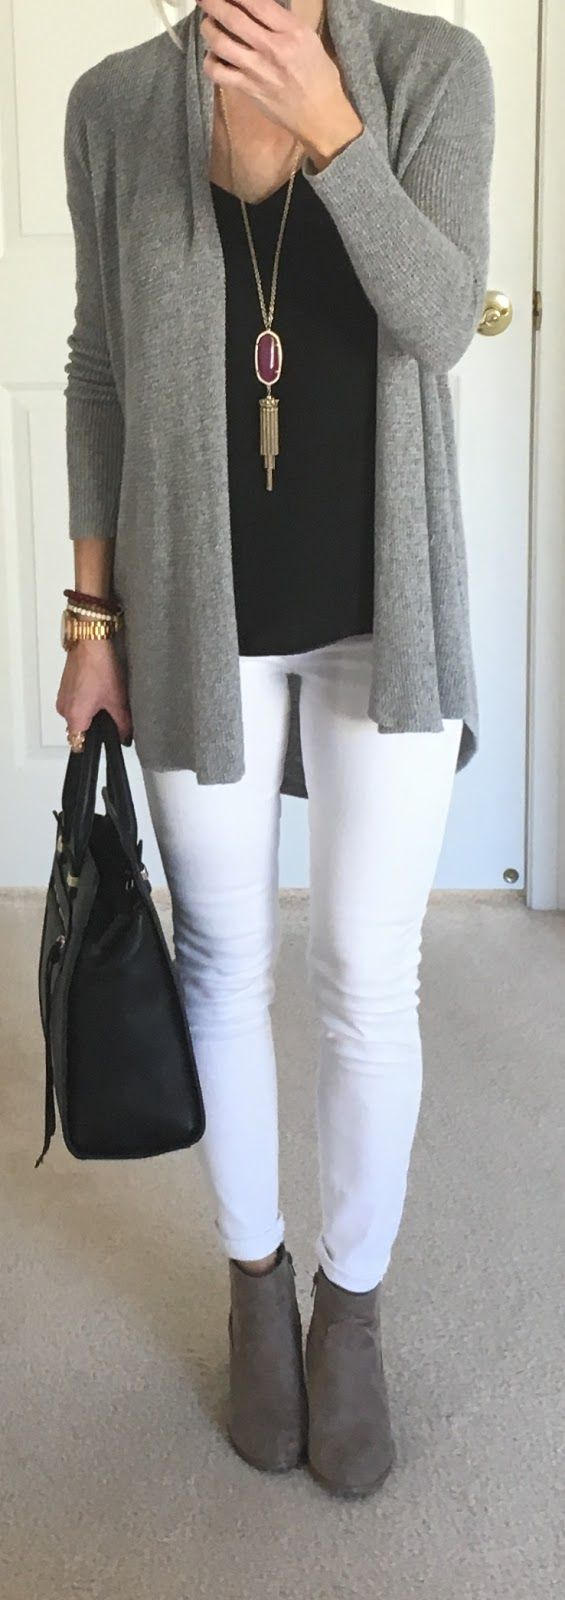 stylish look : grey cardi + black top + bag + white skinnies + boots